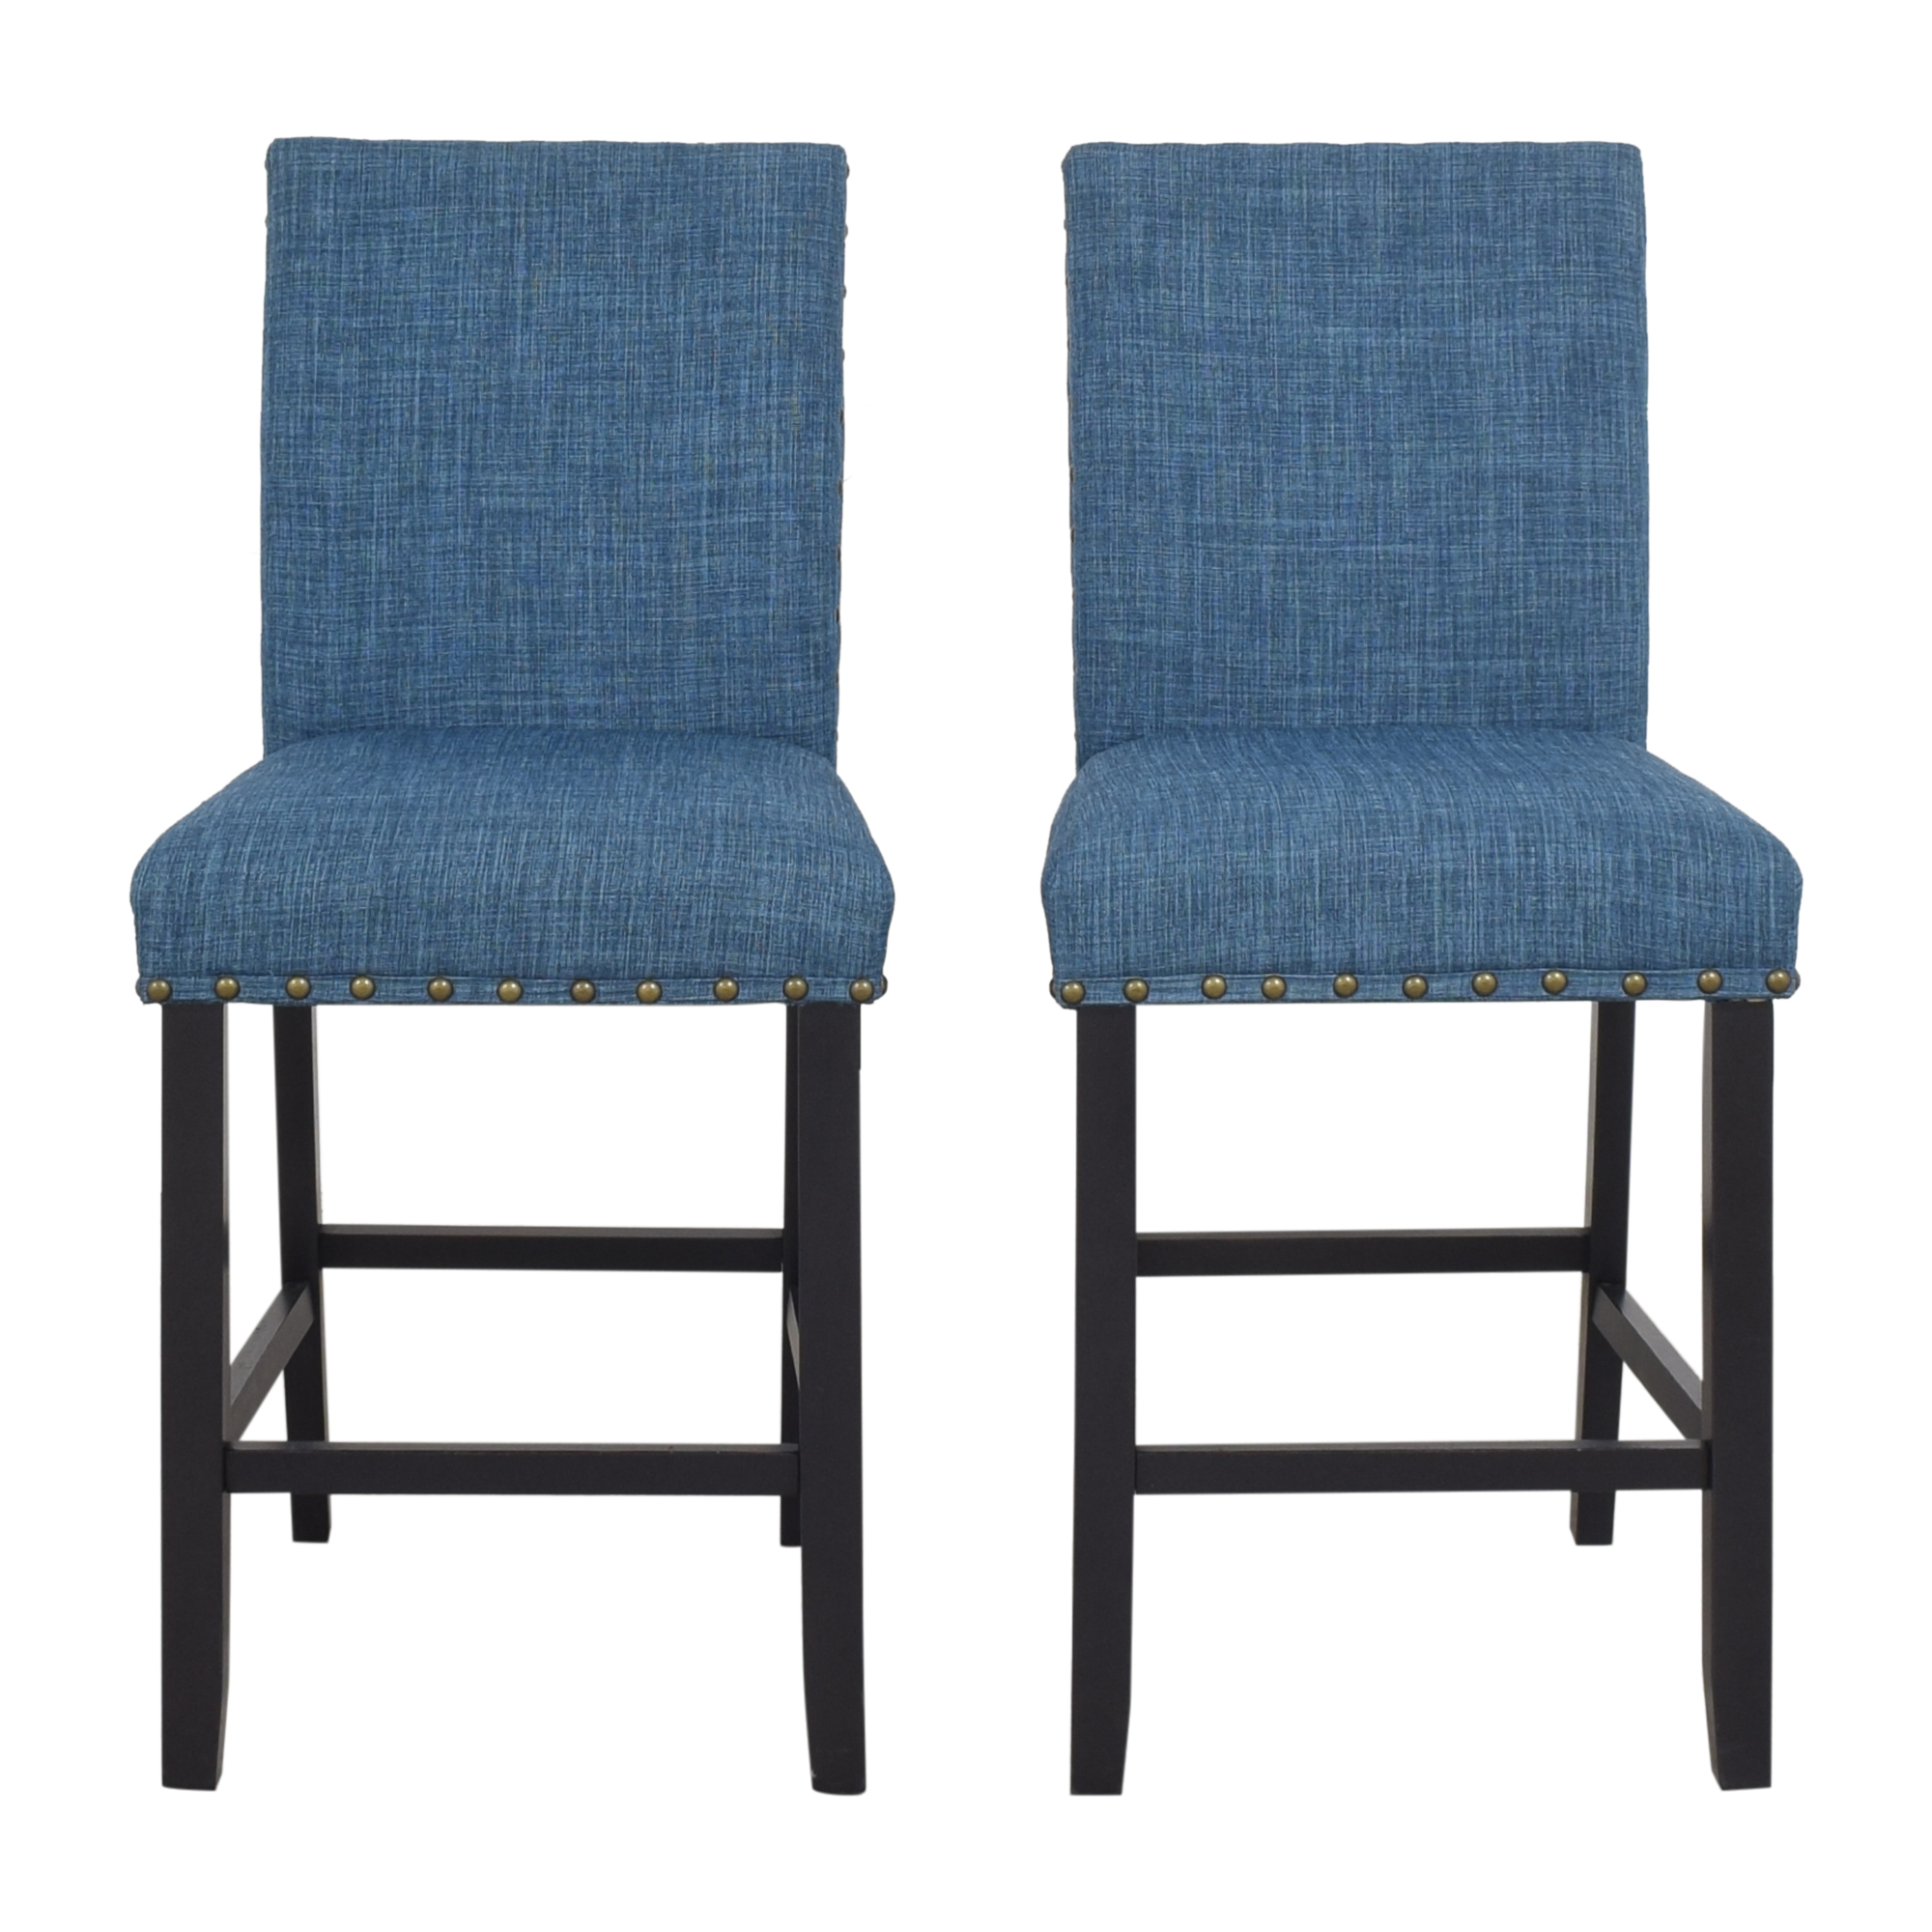 Overstock Overstock Biony Nailhead Counter Stools on sale